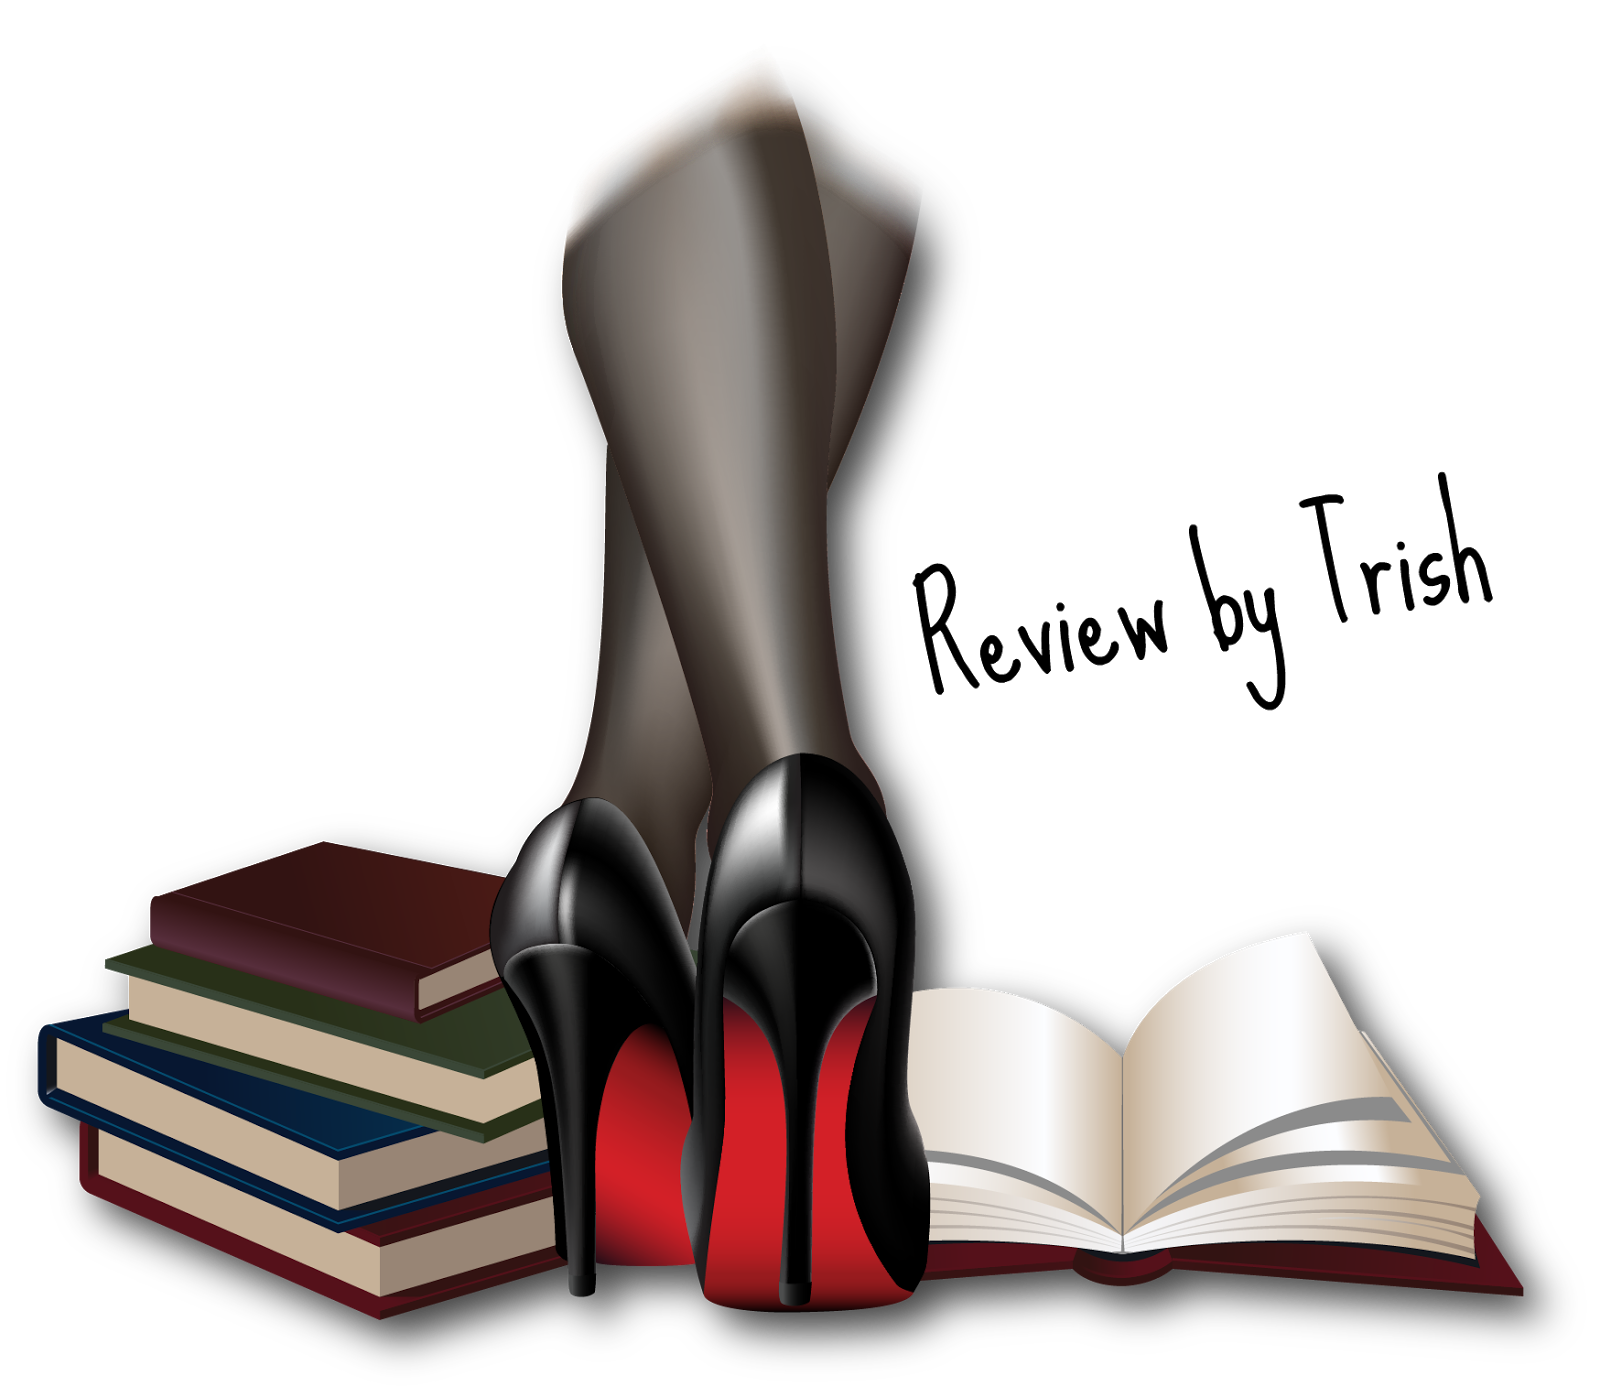 Novels In Heels: REVIEW - American Bad Boy by Eddie Cleveland